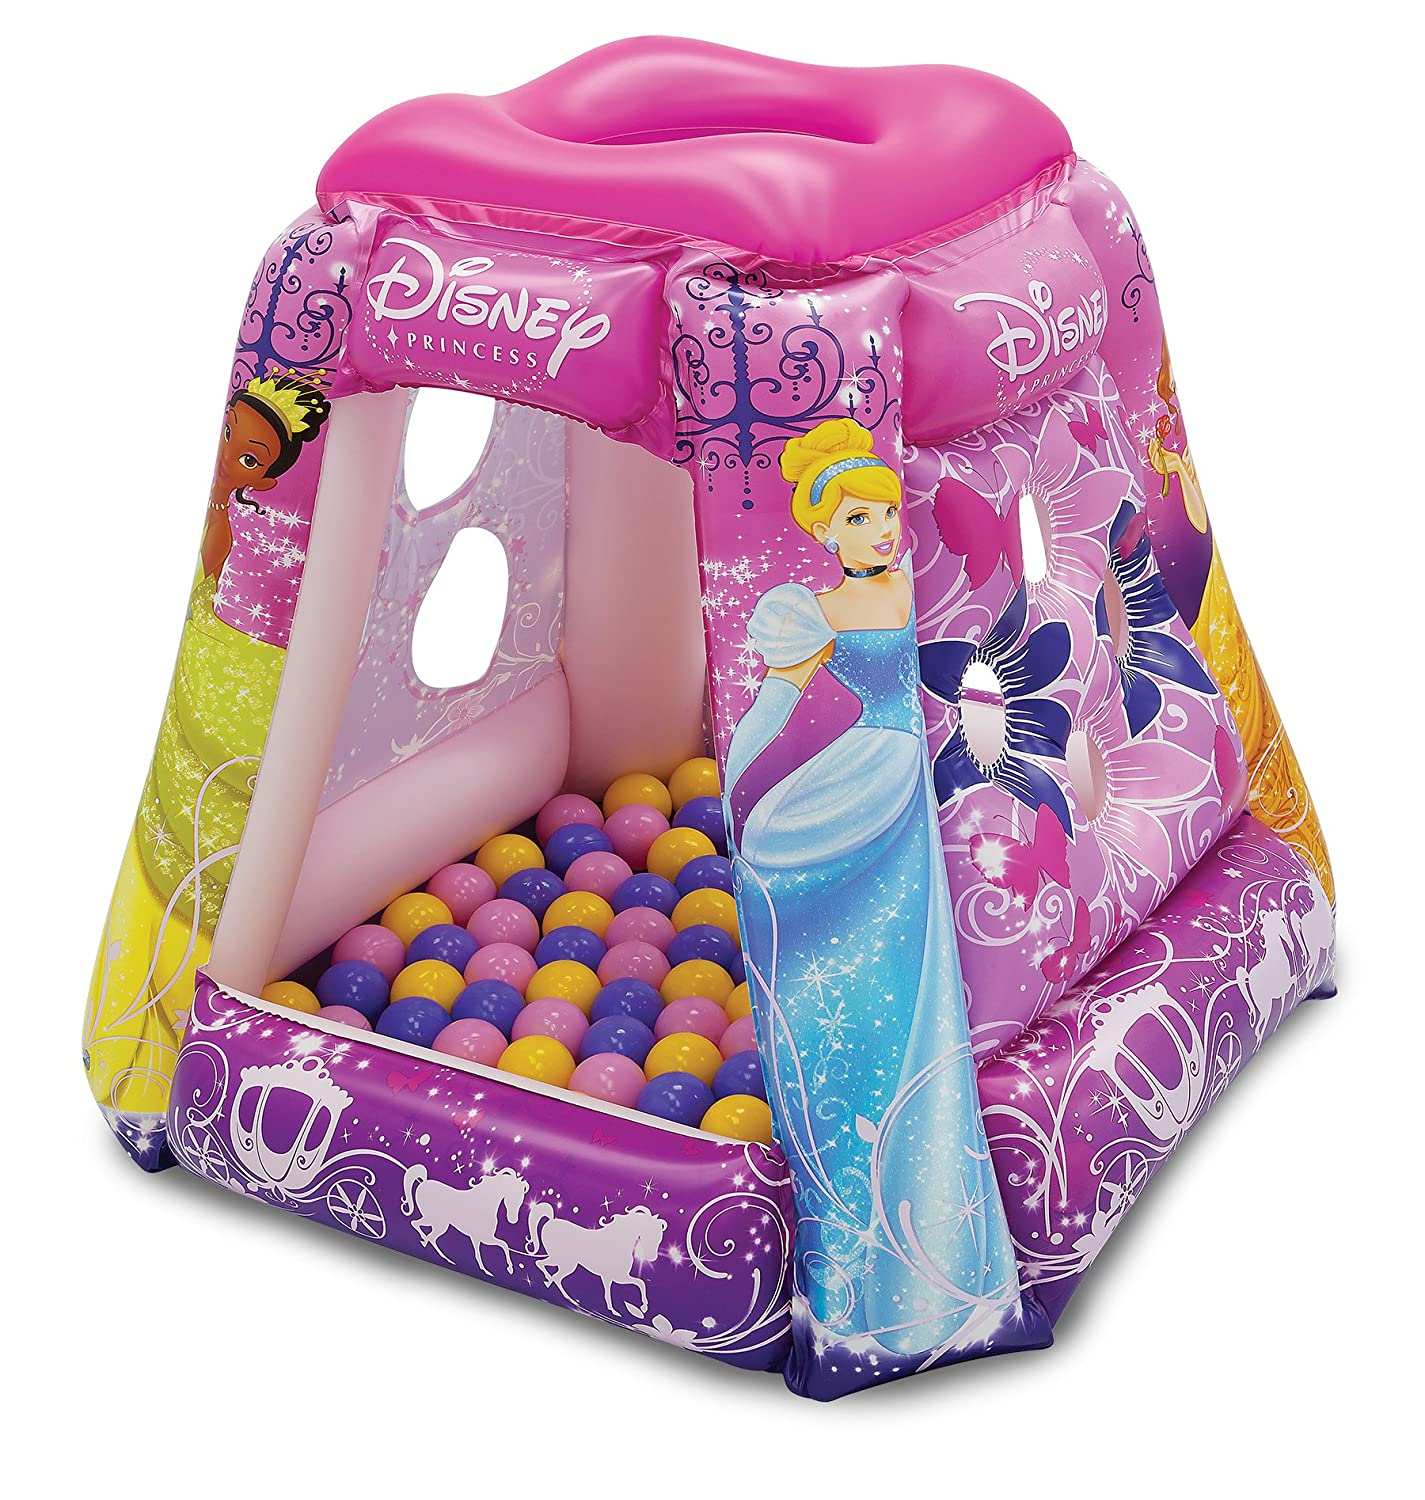 Disney Princess Glitter 'N Glam Playland with 20 Balls Walt Disney 3401